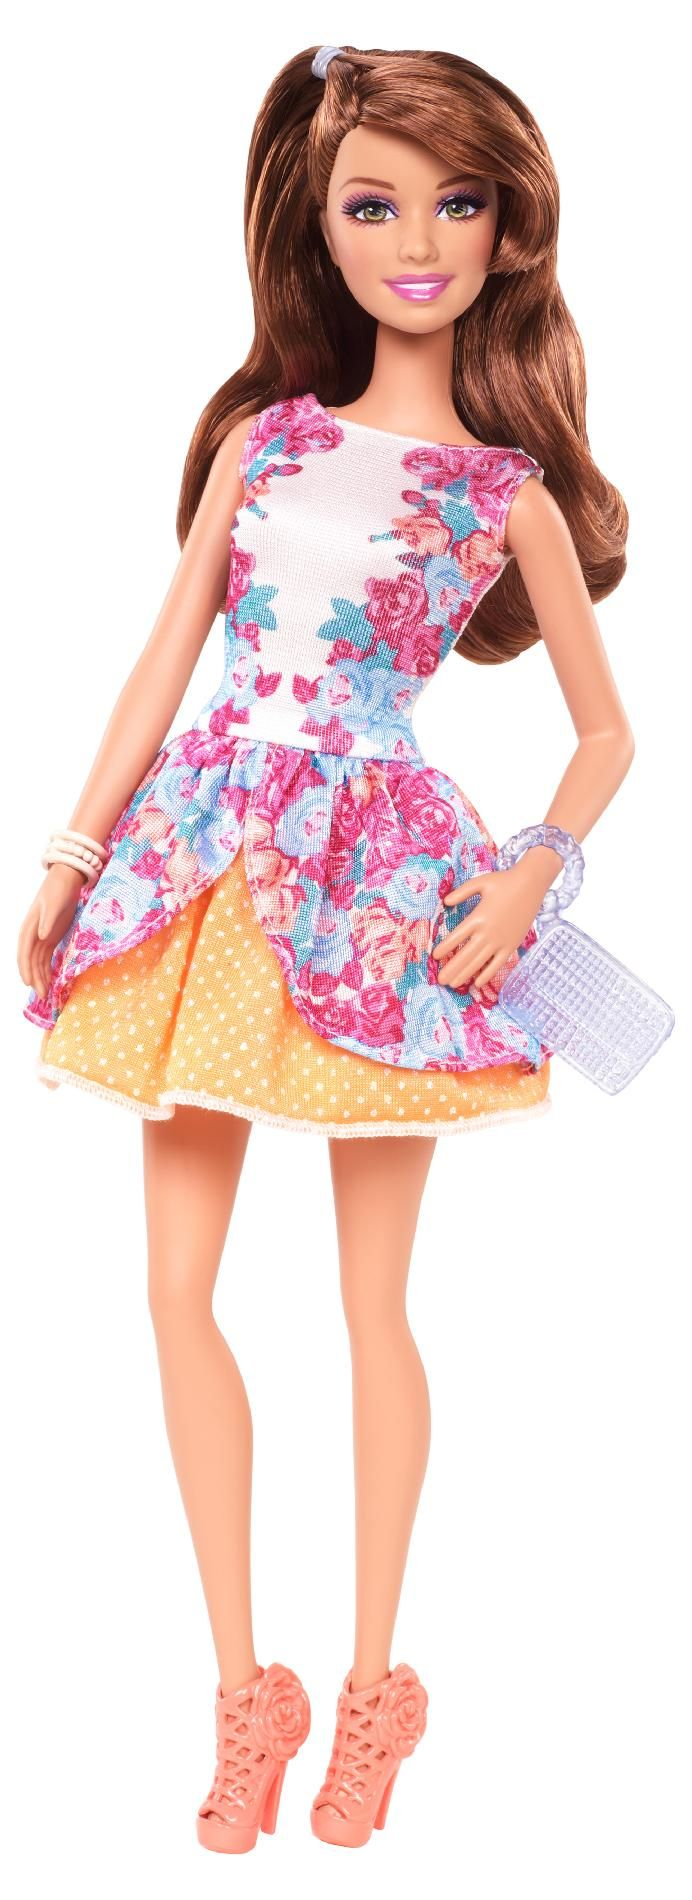 Barbie Fashionista Party Glam Teresa Doll, Floral Dress by ...